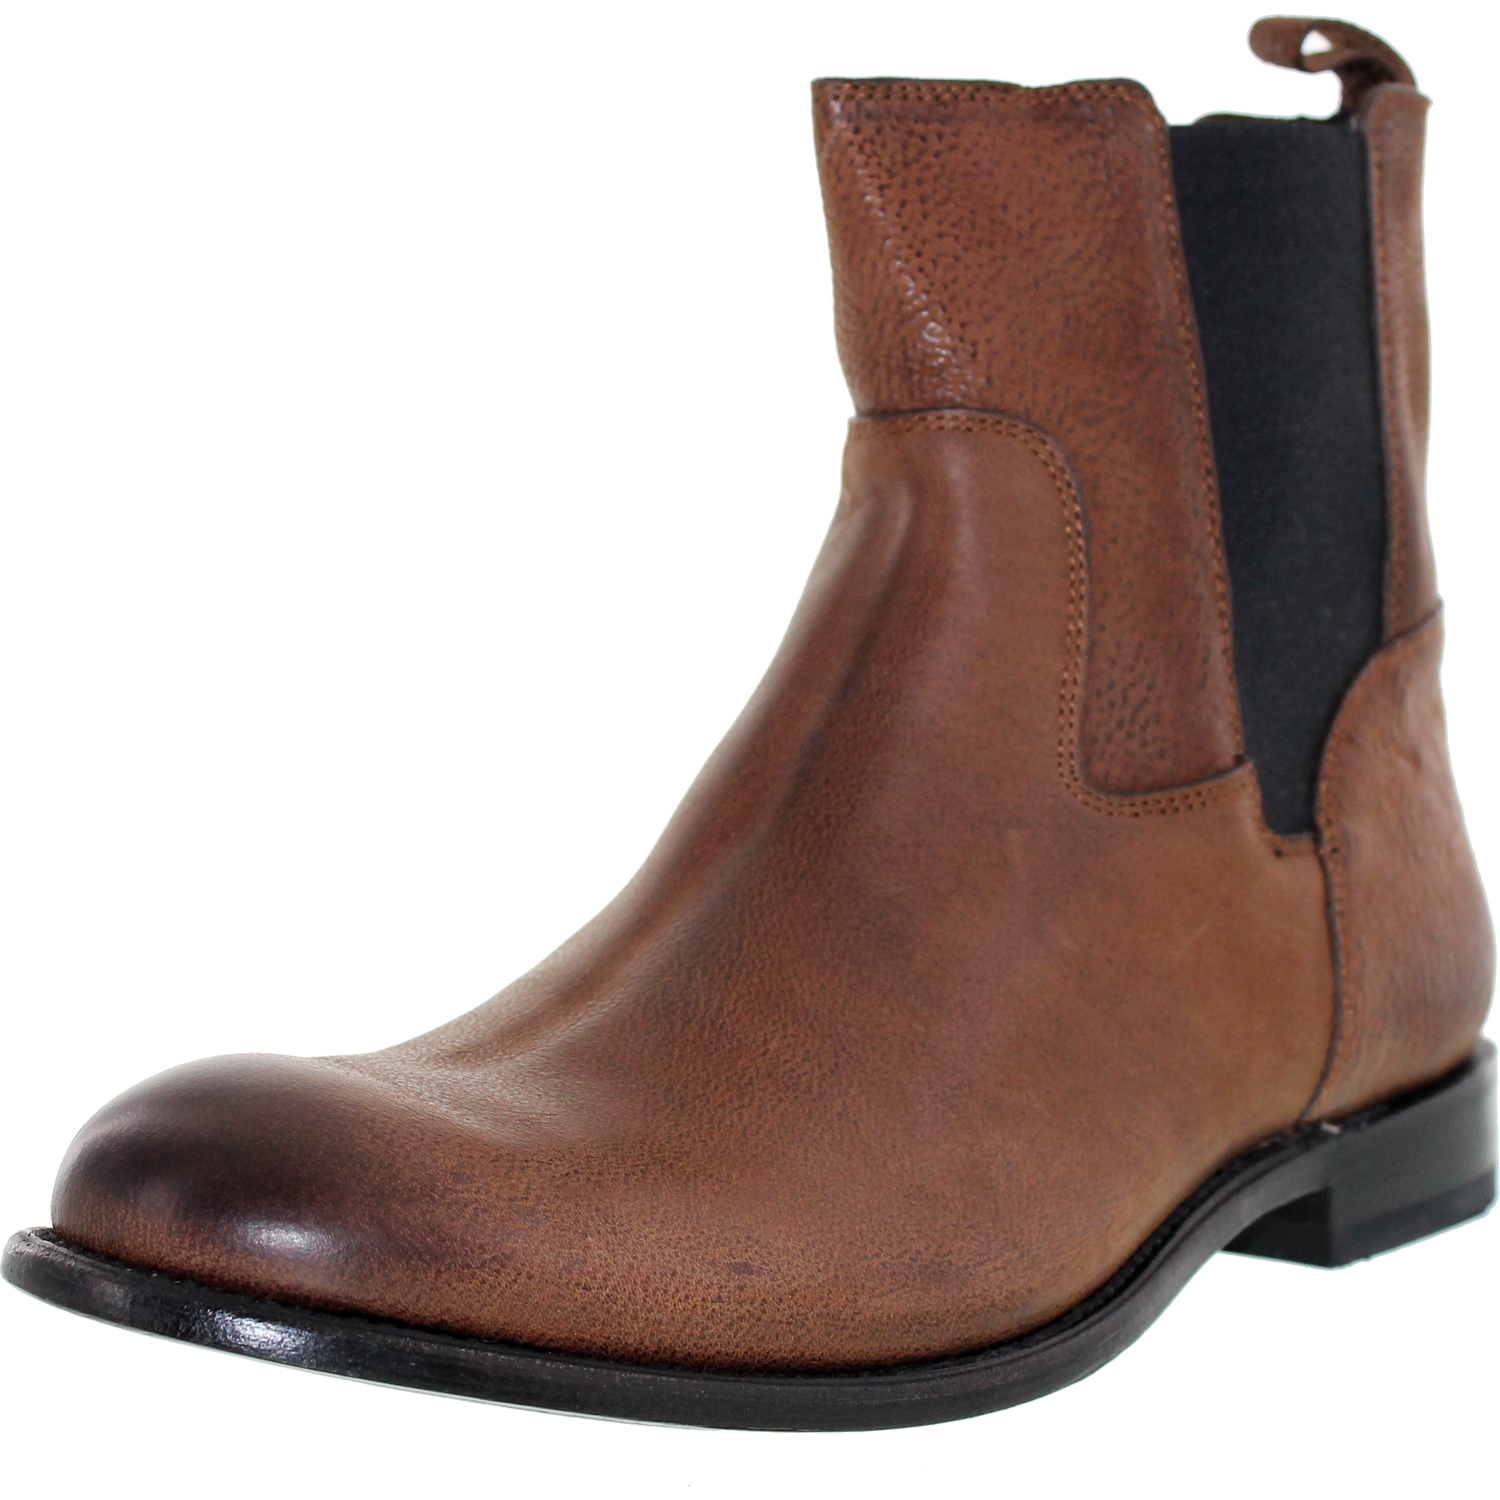 J.D. Fisk Men's Dortmund Brown Ankle-High Leather Boot - 9.5M